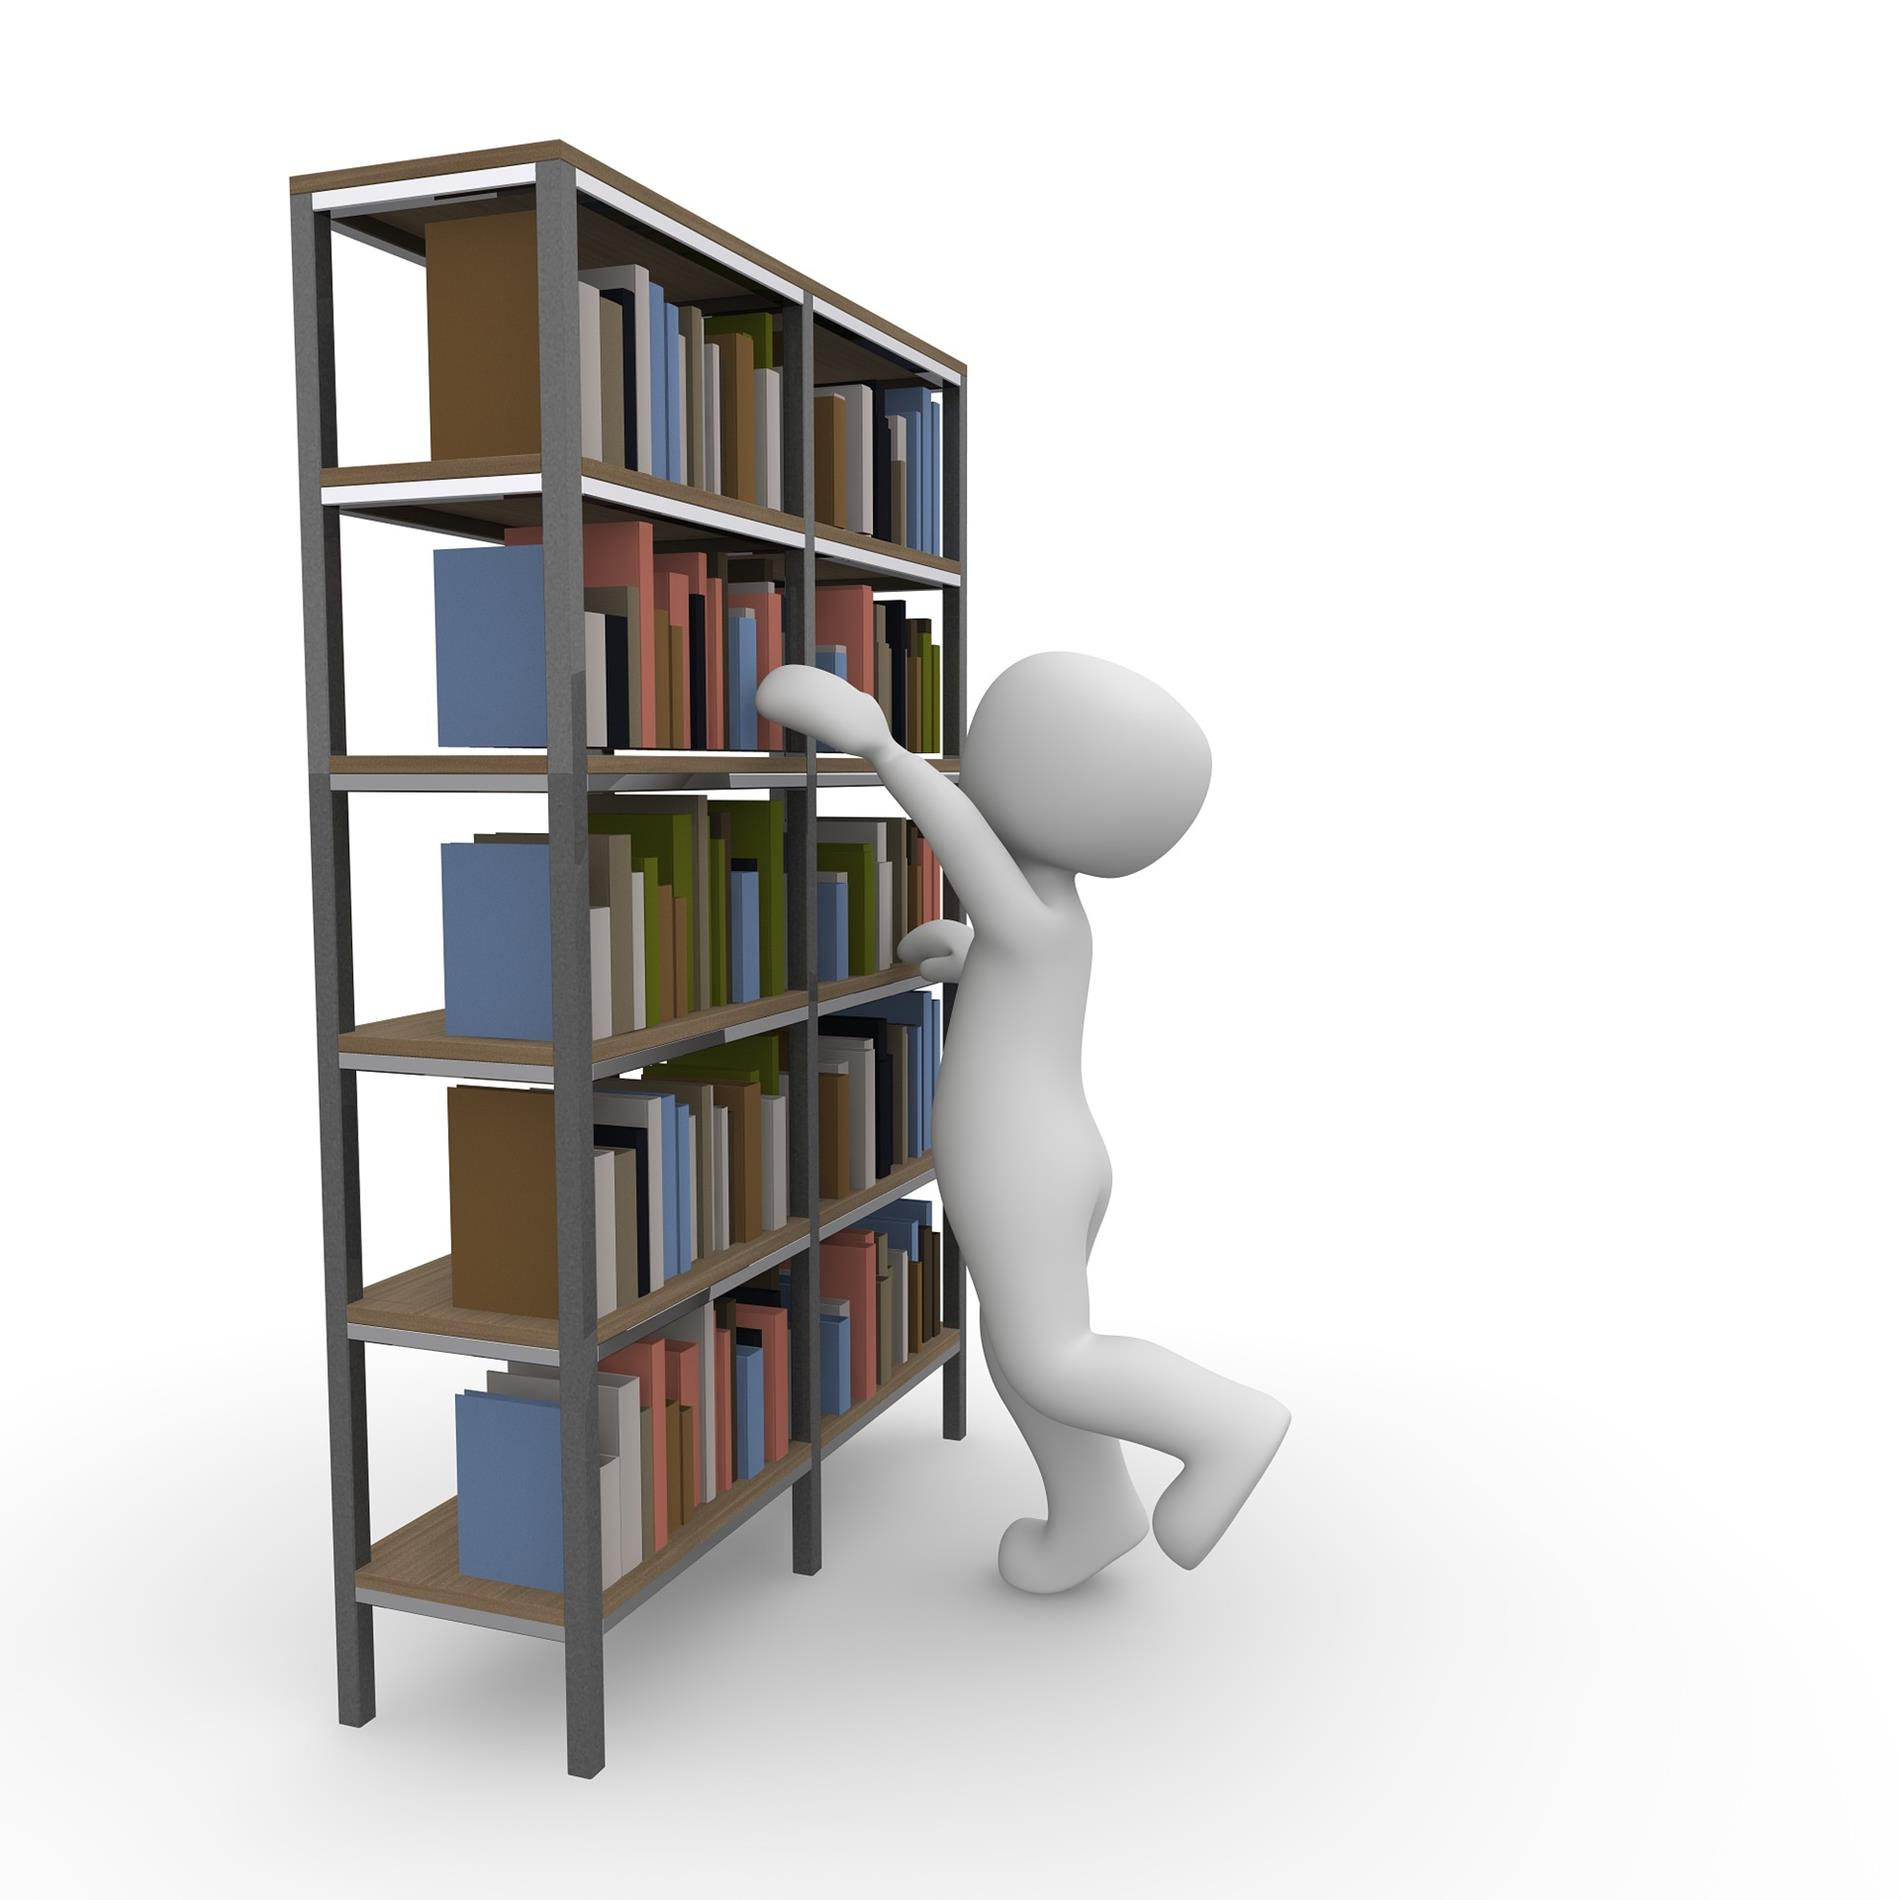 human figure reaching to pull book from bookshelf